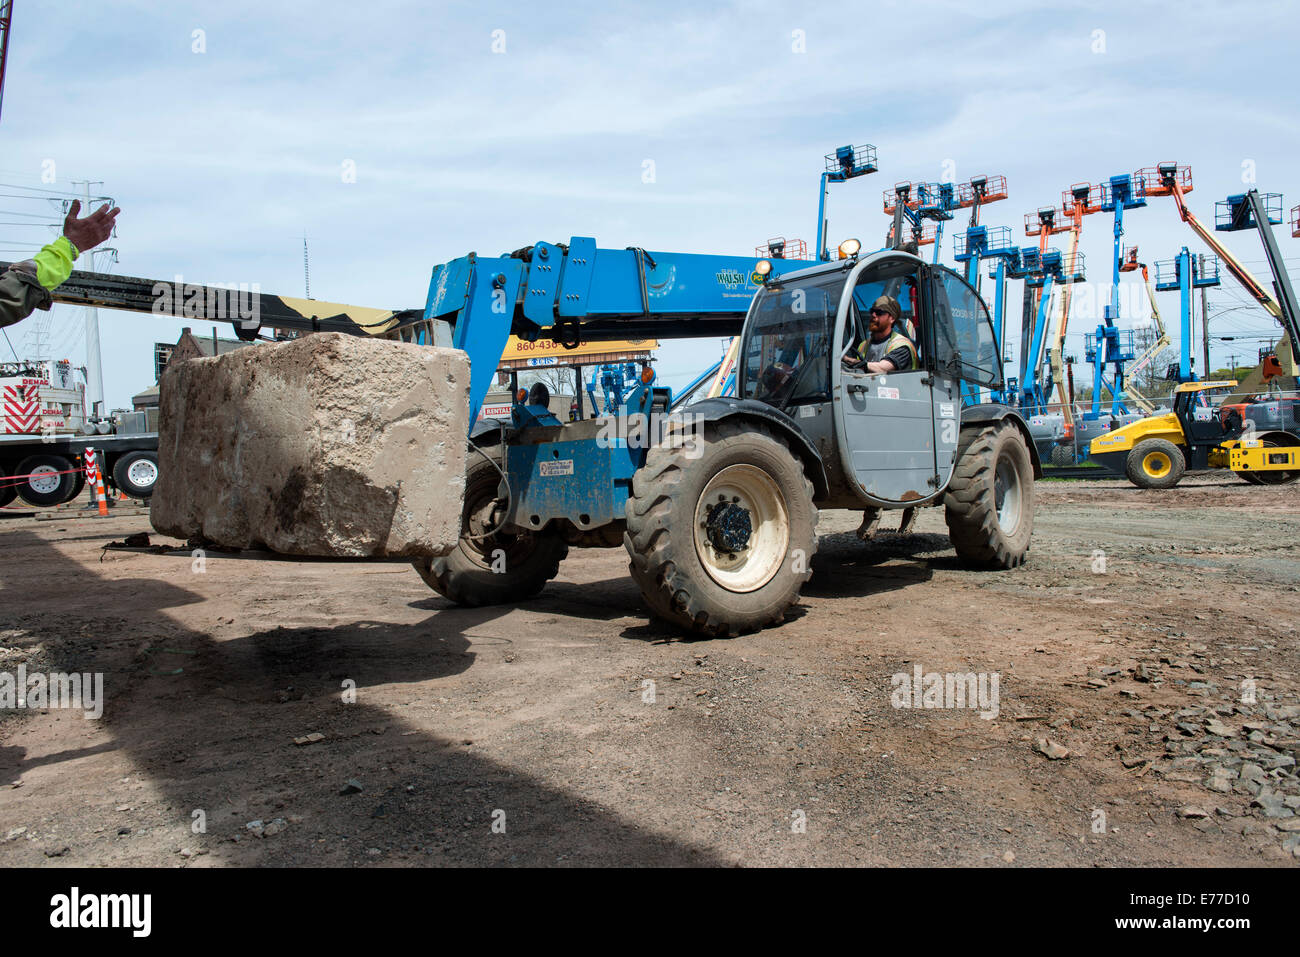 All terrain or rough terrain forklift at construction site at new stock photo 73307948 alamy for Terrain construction